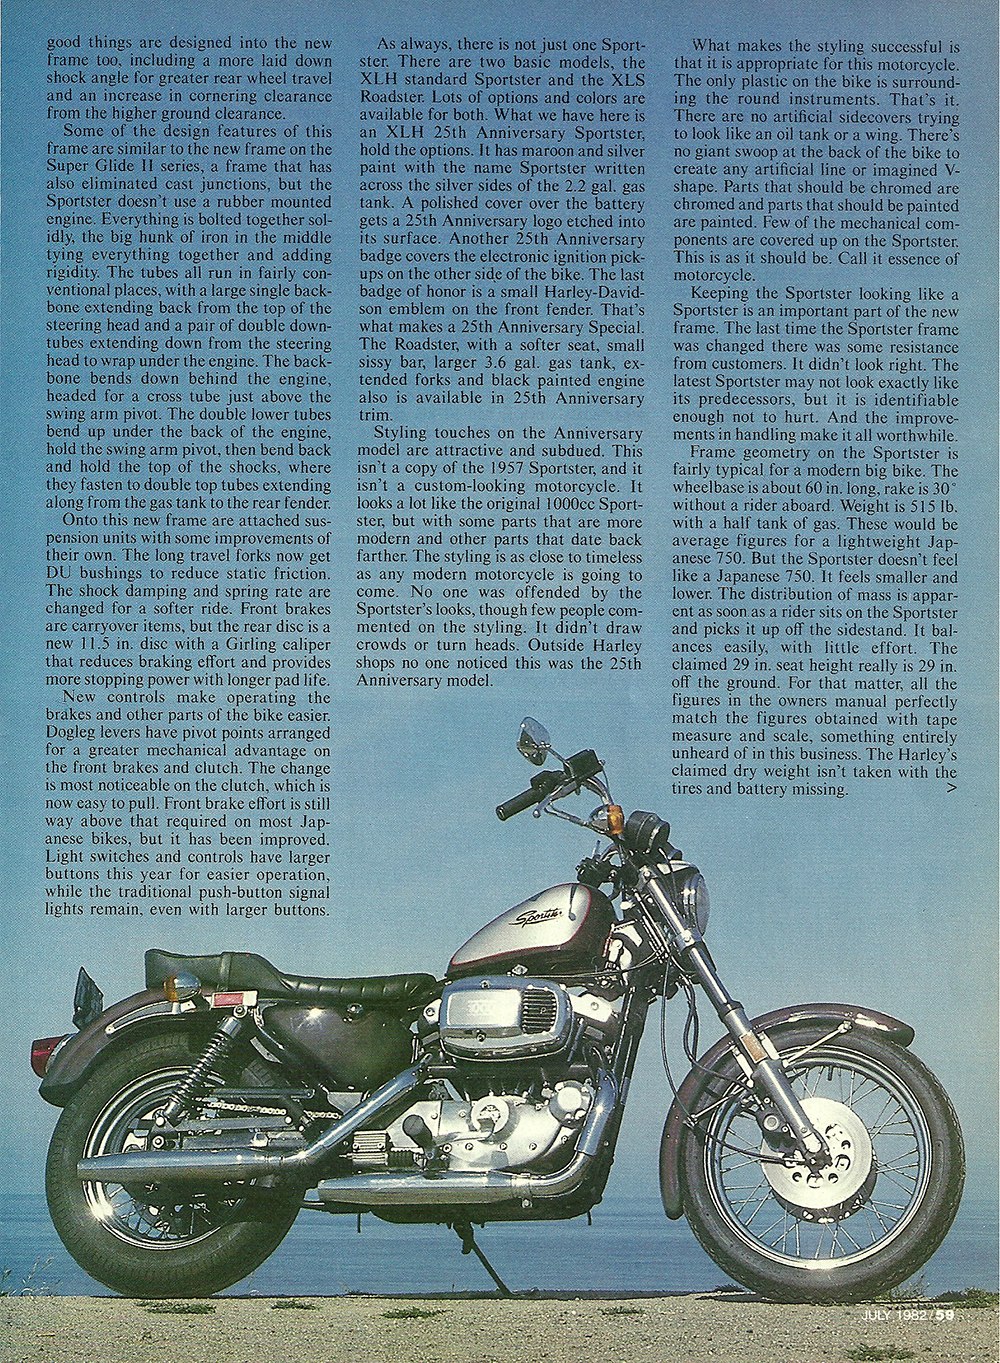 1982 Harley Davidson XLS Sportster 25th road test 02.jpg